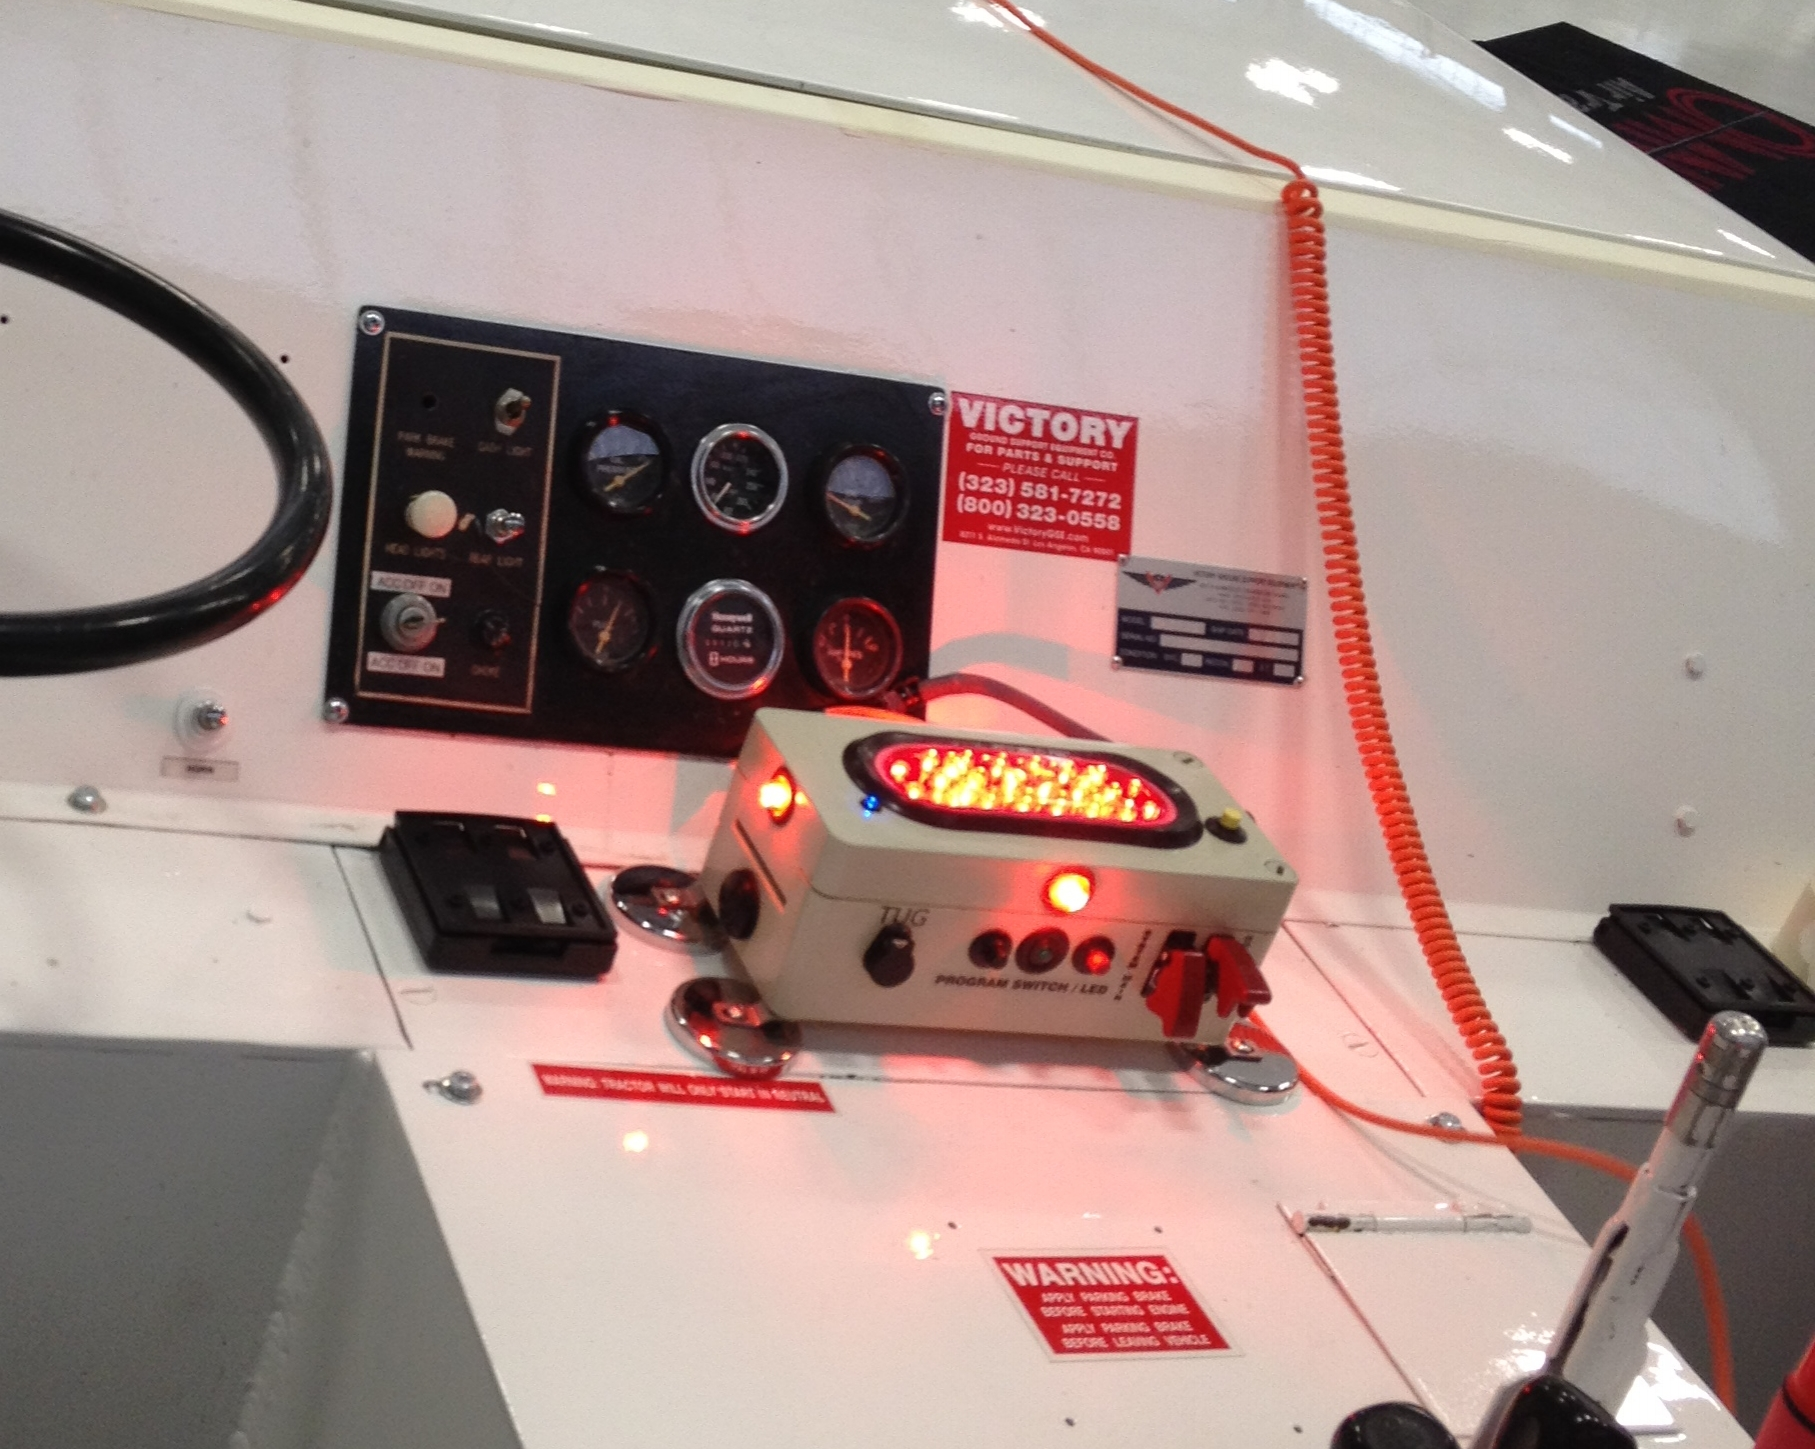 Each System can receive 12v or 28v power from the tug or towing device.